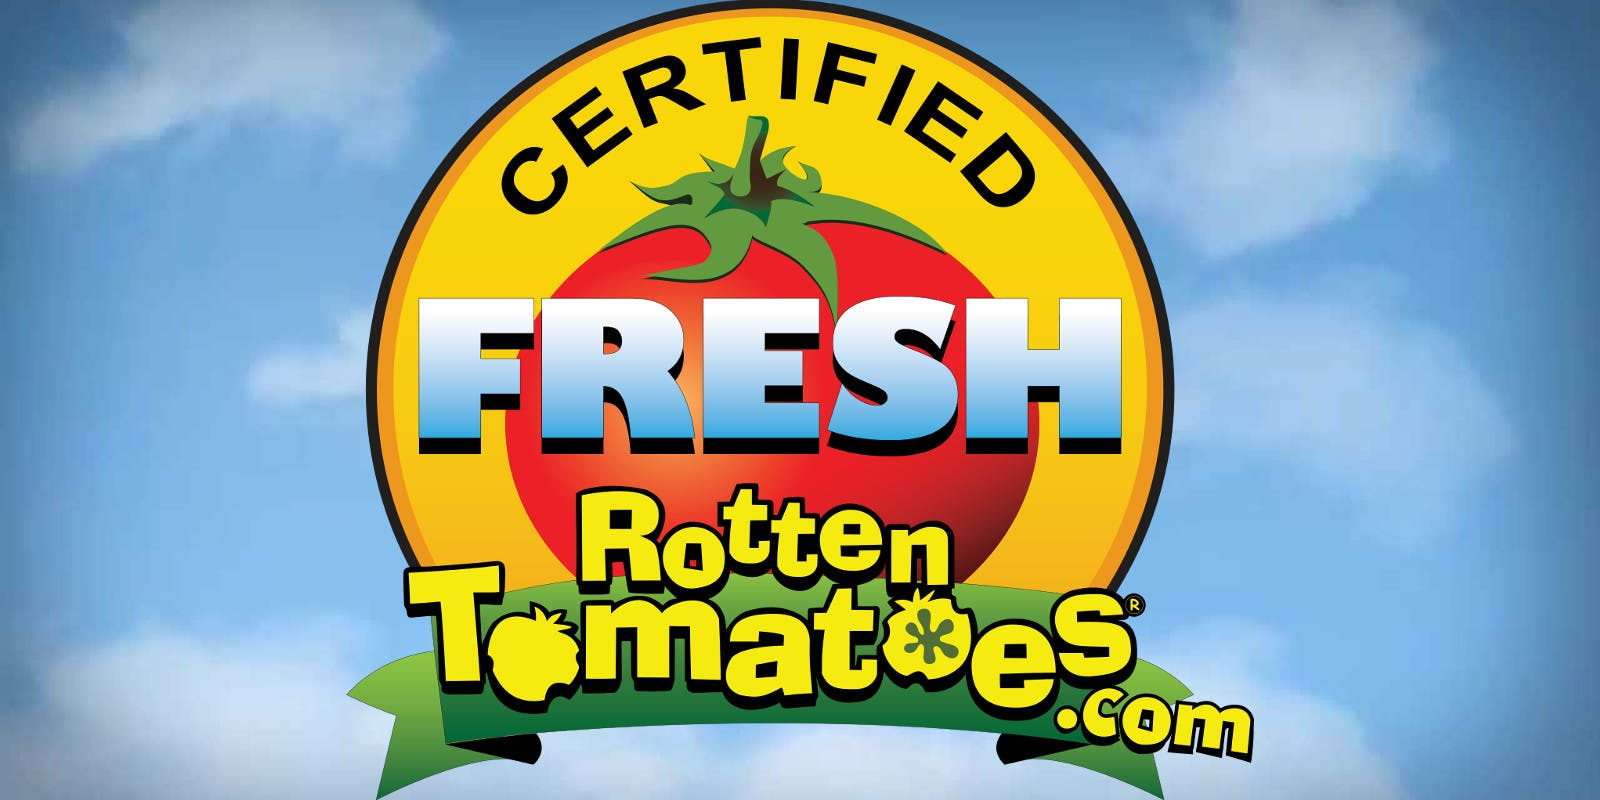 rotten tomatoes, oscar nominations